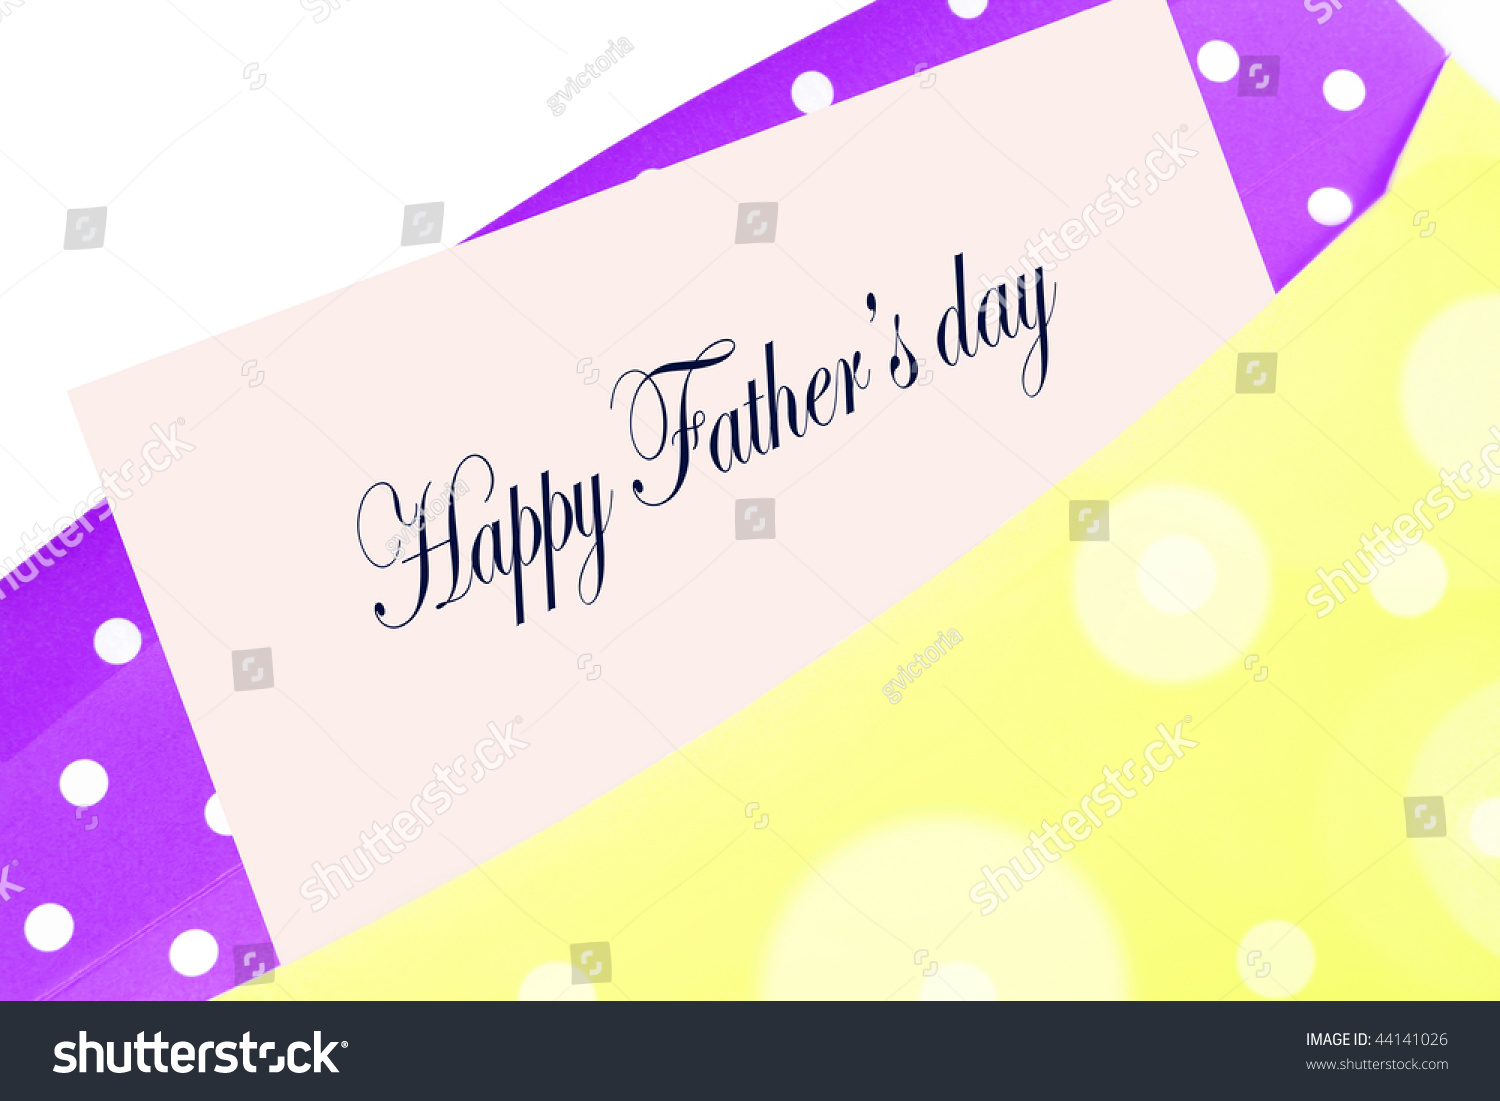 Happy fathers day greeting card note stock illustration 44141026 happy fathers day greeting card note or letter in yellow and purple polka dot envelope kristyandbryce Choice Image